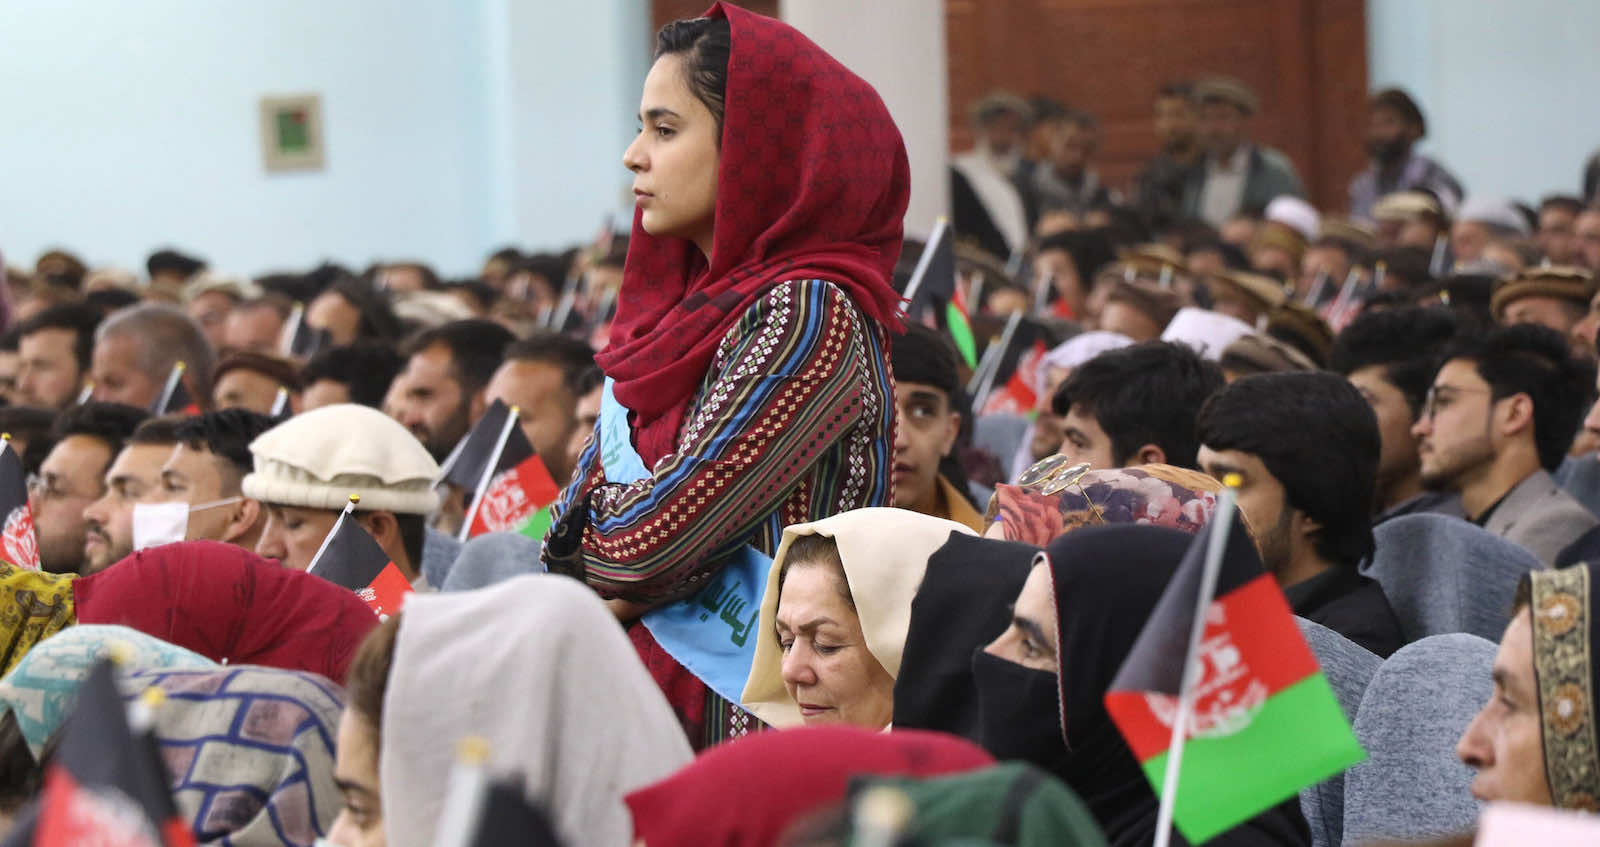 Afghan women, young people, activists and elders rally in March to support peace talks and the government in Kabul, Afghanistan (Haroon Sabawoon/Anadolu Agency via Getty Images)